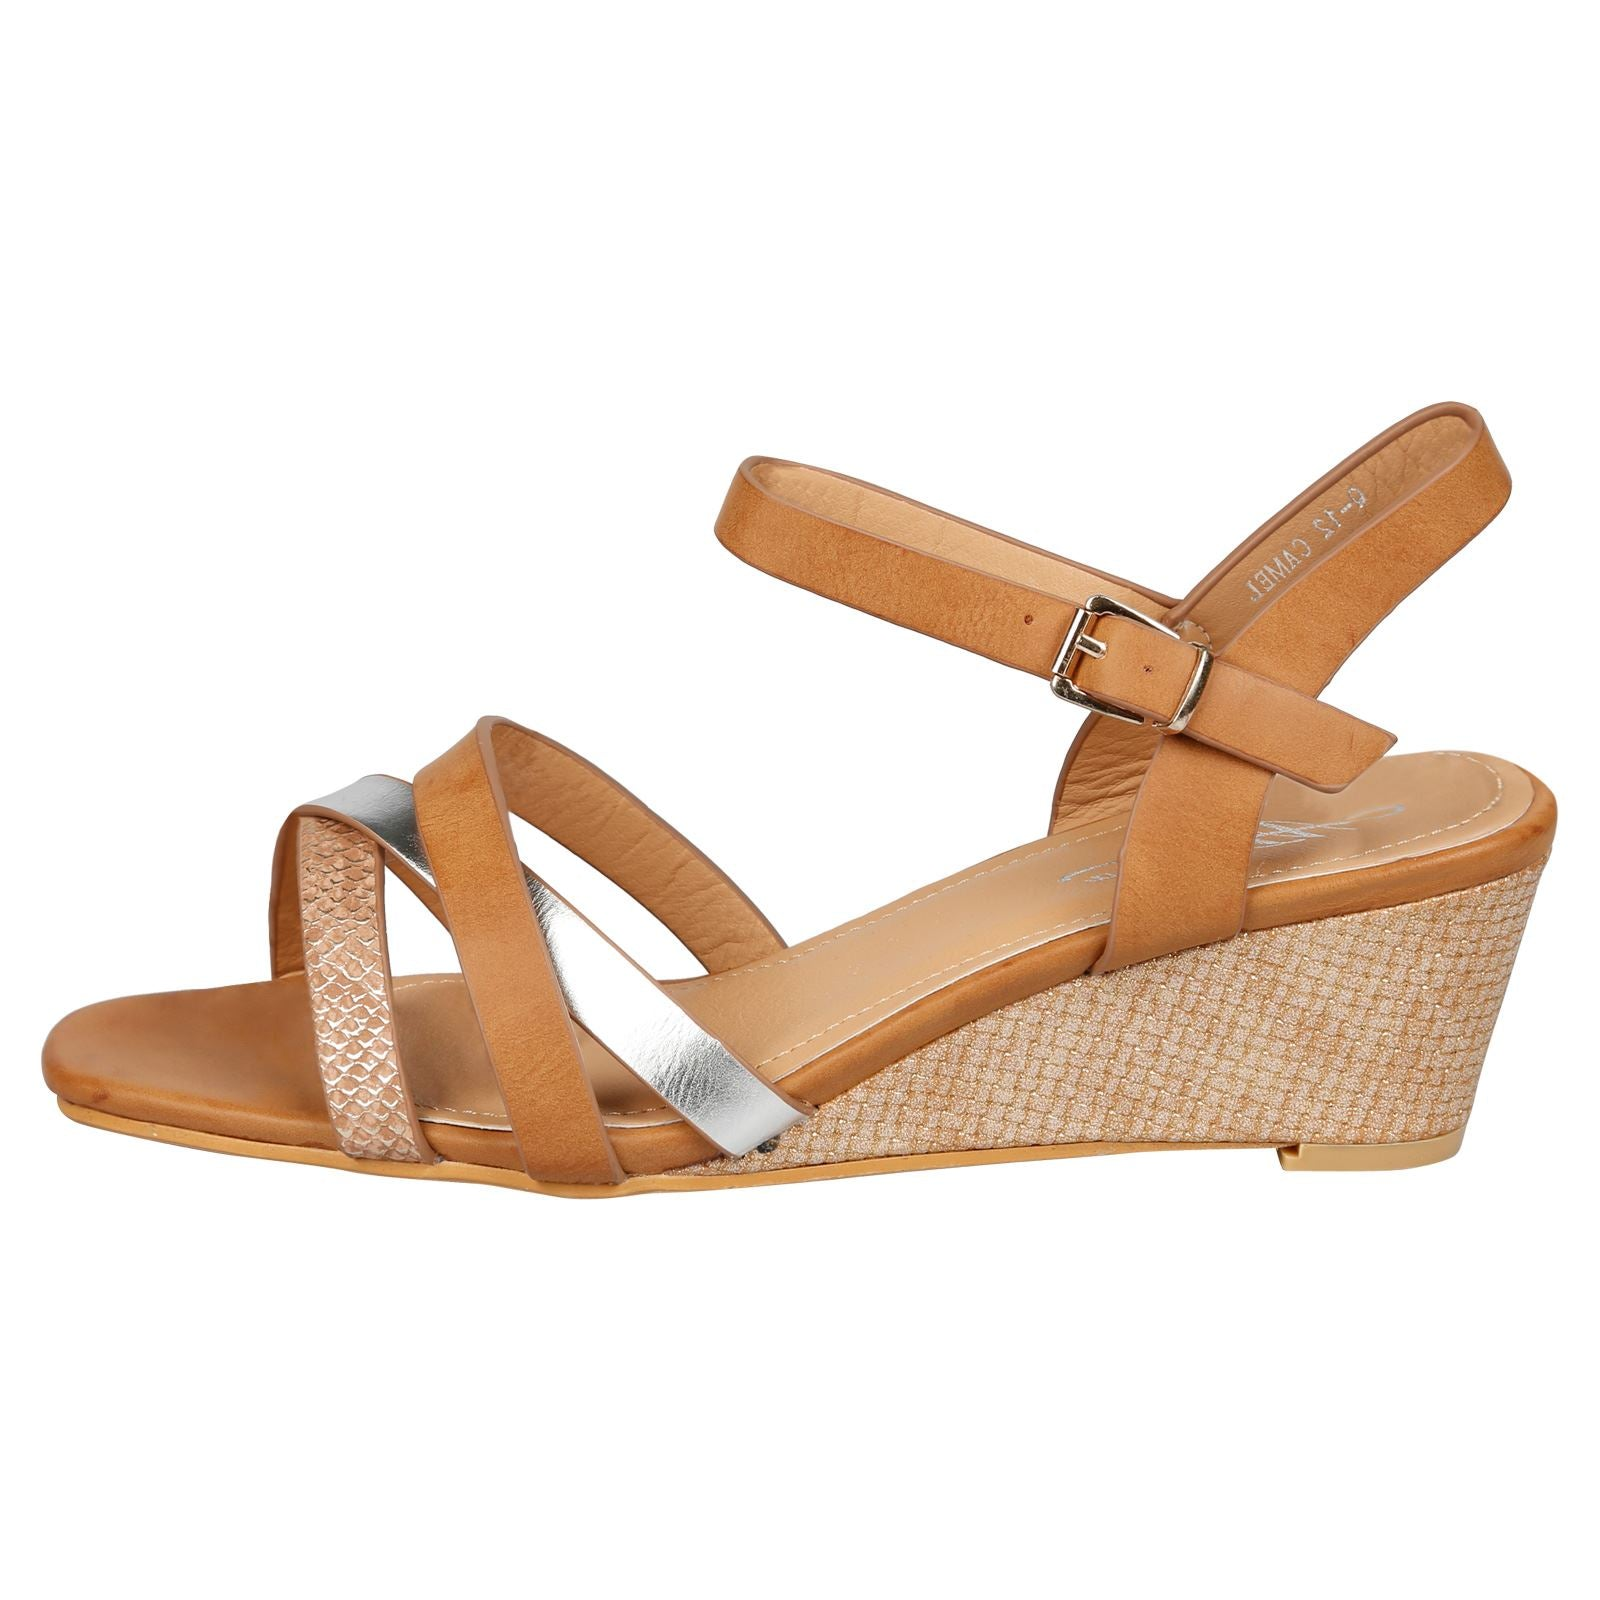 Marjorie Low Wedge Sandals in Camel Faux Leather